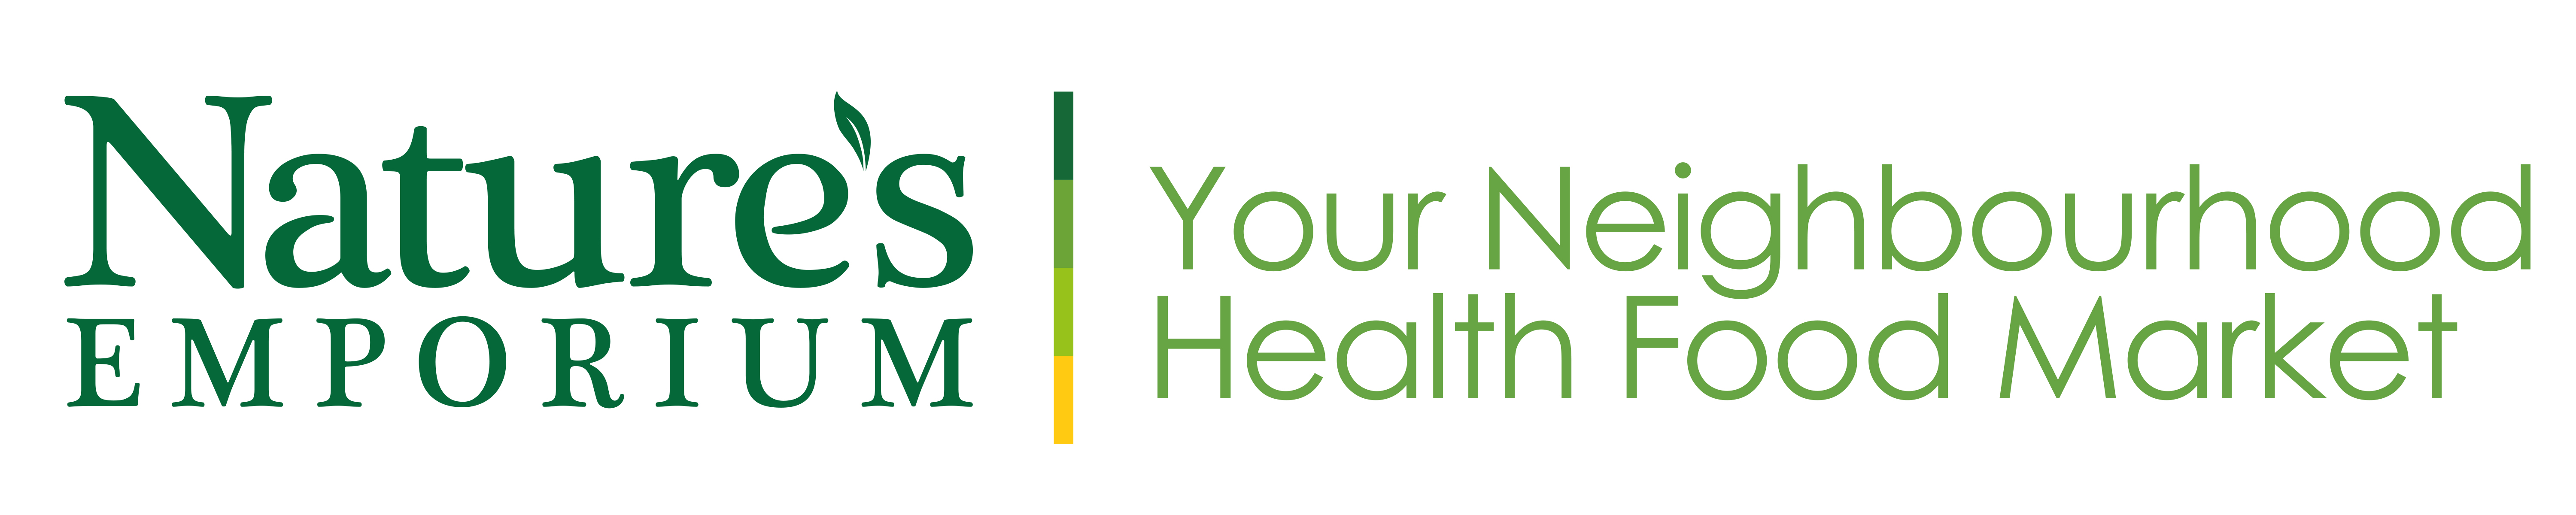 Natures Emporium Your Neighbourhood Health Food Market Logo 2013 high res